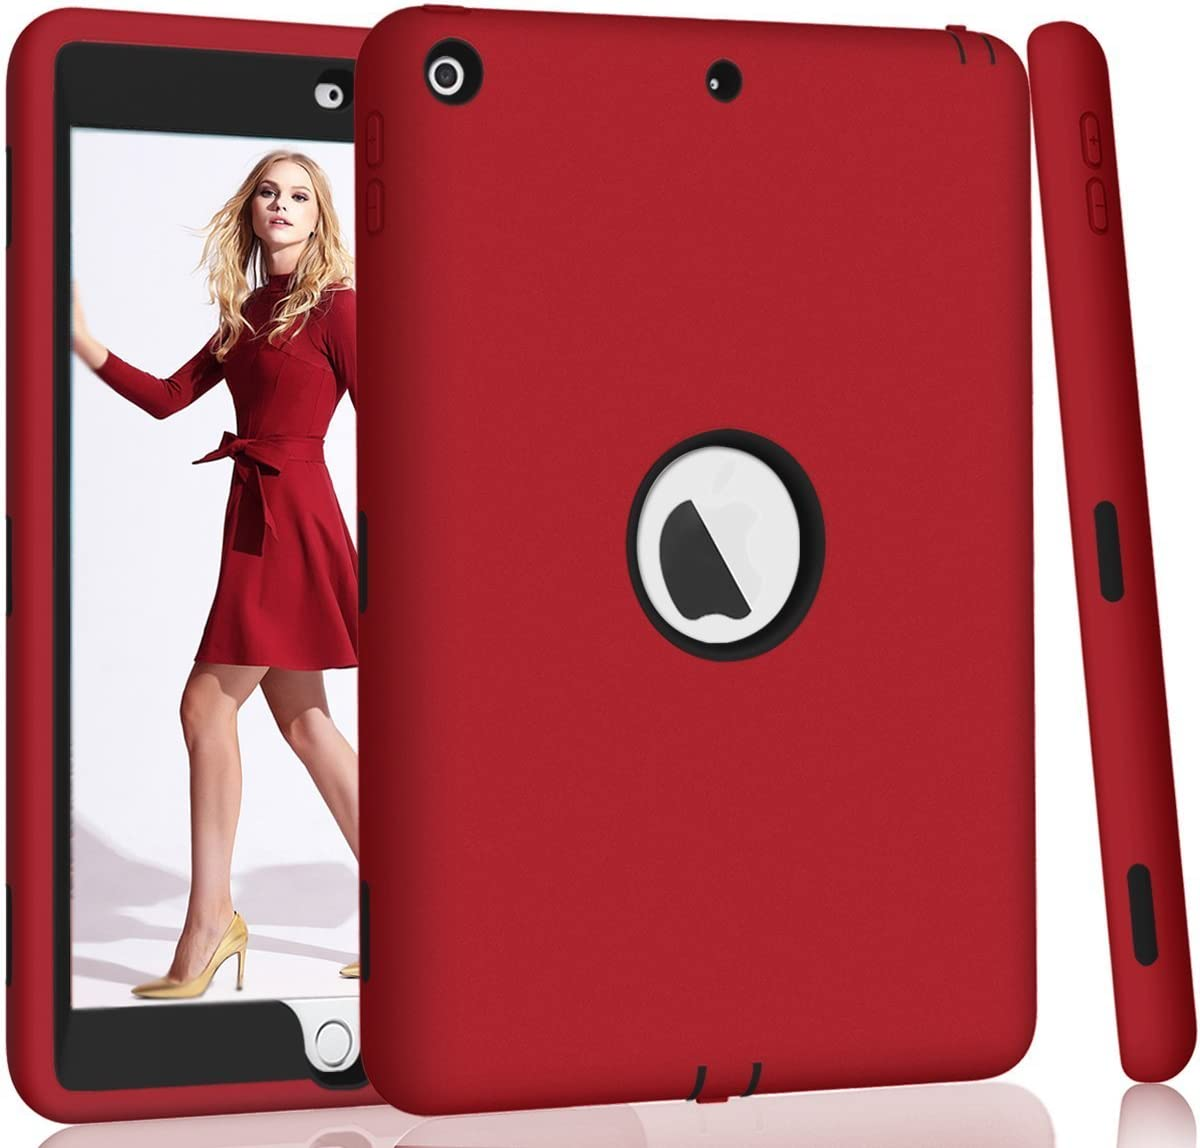 Hocase iPad 5th/6th Generation Case, iPad 9.7 2018/2017 Case, High-Impact Shock Absorbent Dual Layer Silicone+Hard PC Bumper Protective Case for iPad A1893/A1954/A1822/A1823 - Red / Black